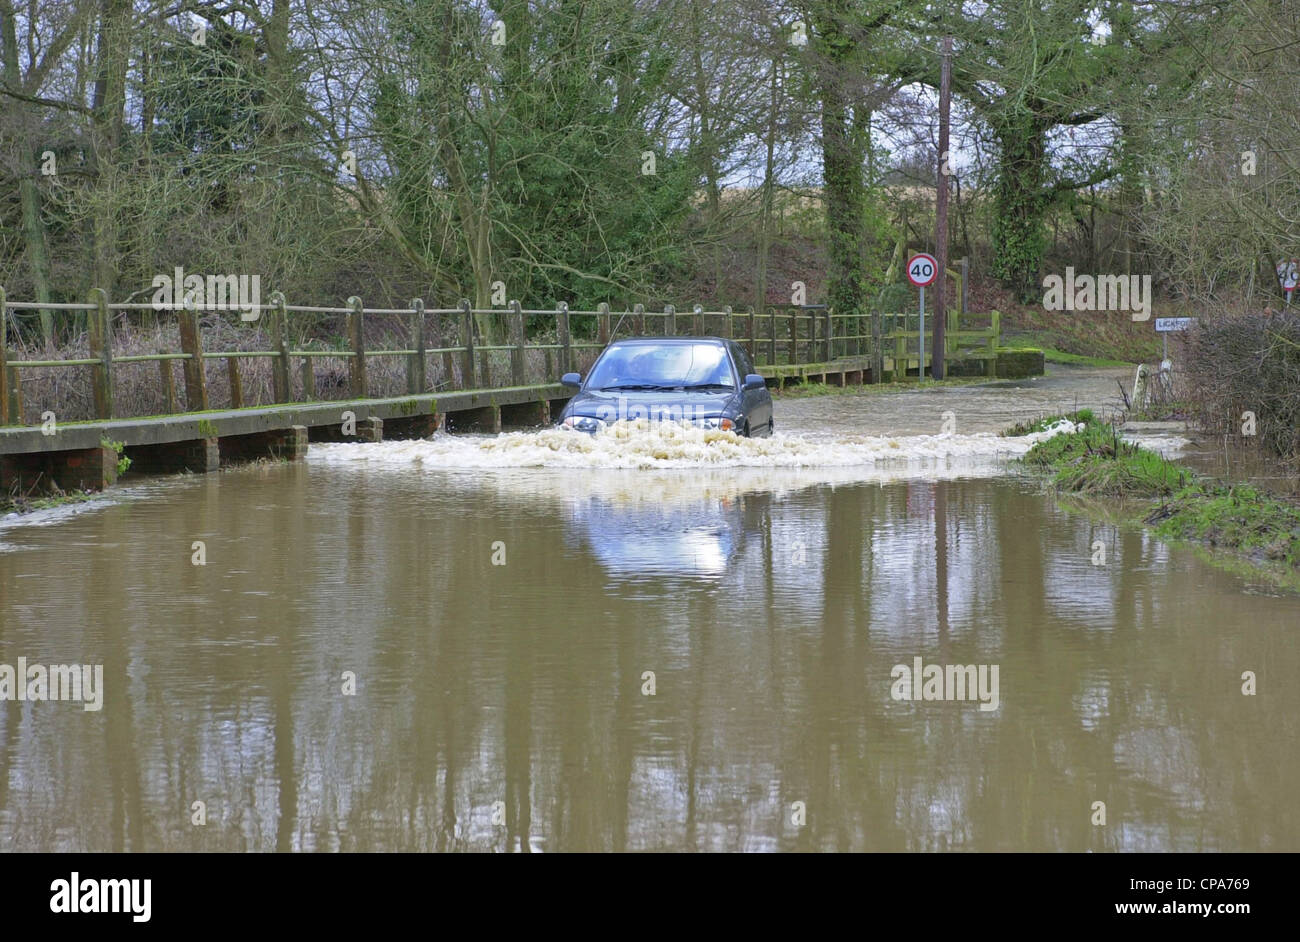 Vehicles passing through floods in Sussex - Stock Image